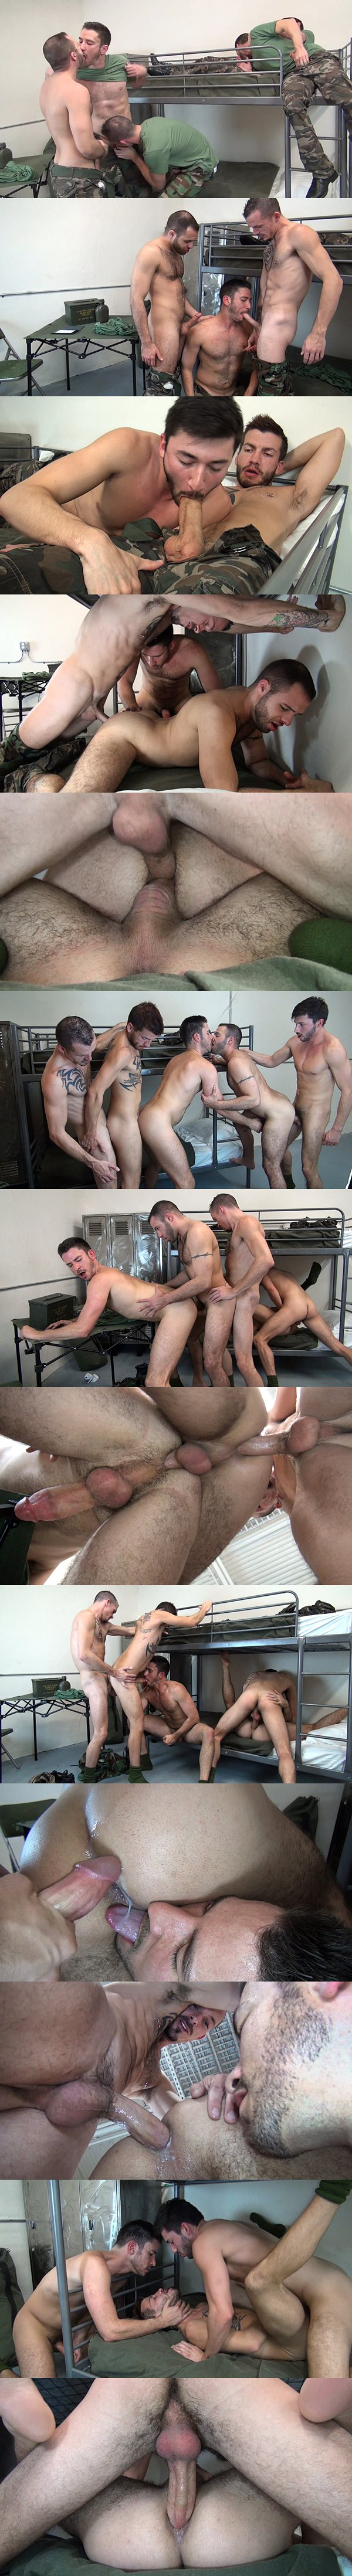 Braxton Smith, Jimmie Slater, Justin Case, Owen Powersa and Scott DeMarco fuck each other in Bareback Barracks Fuckers at Rawfuckclub 02